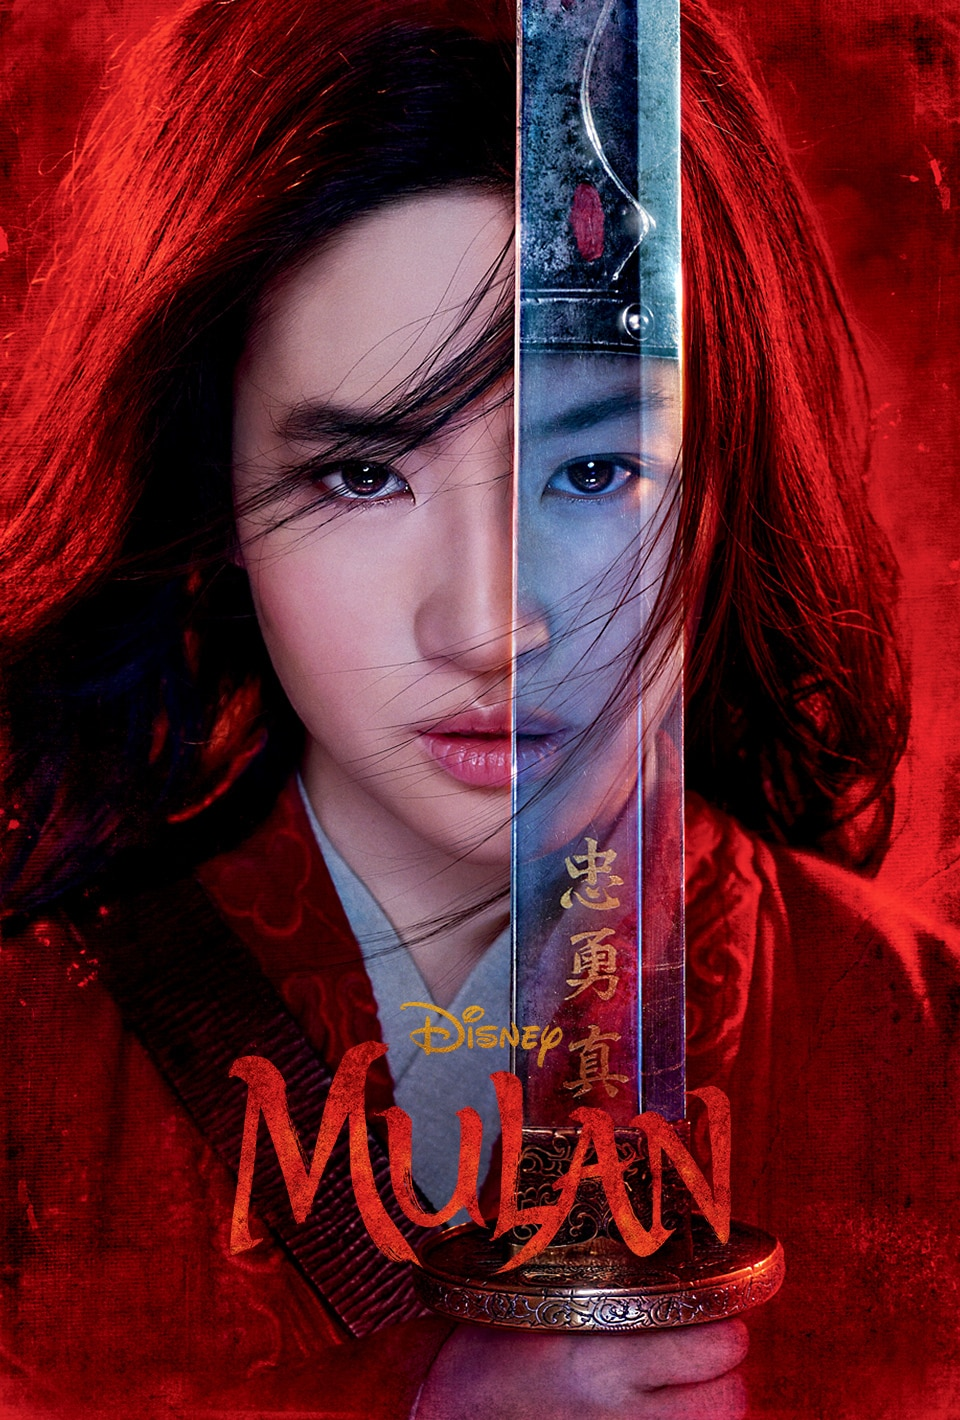 The Mulan Adaptation Is Just A Lackluster Remake The Statesman